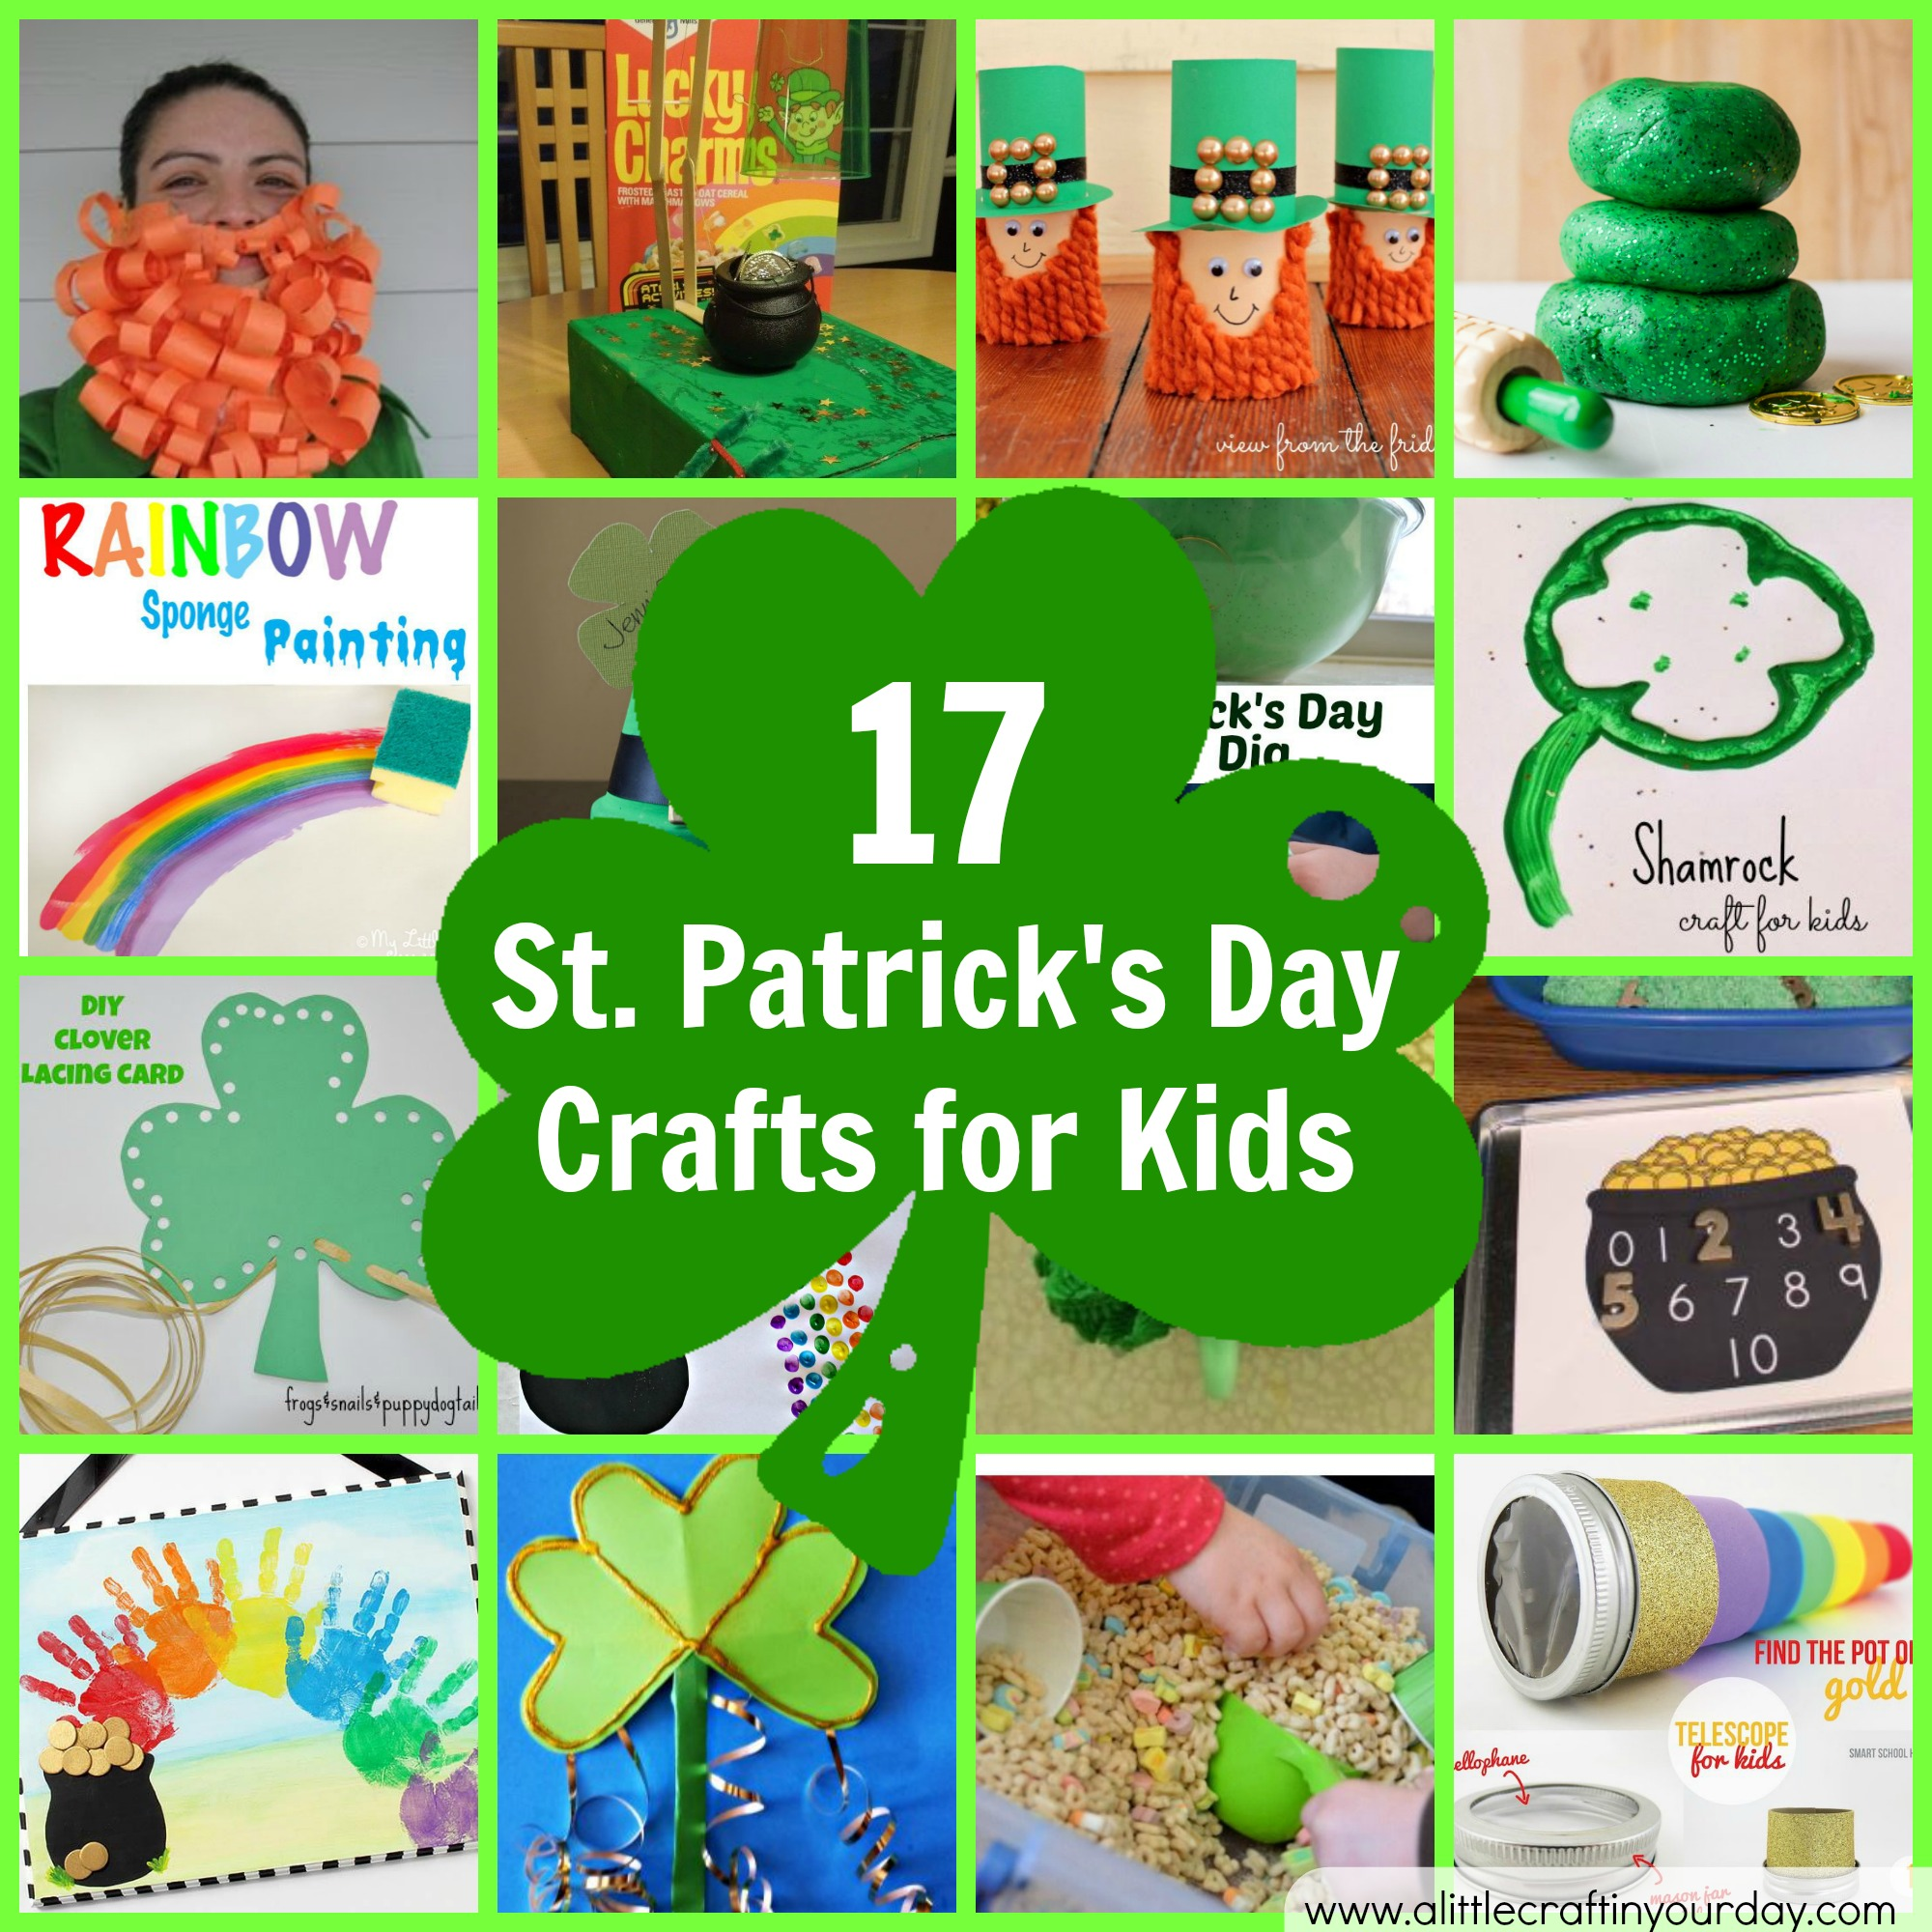 Awesome St Patricks Day Crafts Part - 10: ... St. Patricku0027s Day Crafts For Kids. 17_St_Patricks_Day_Crafts_For_Kids